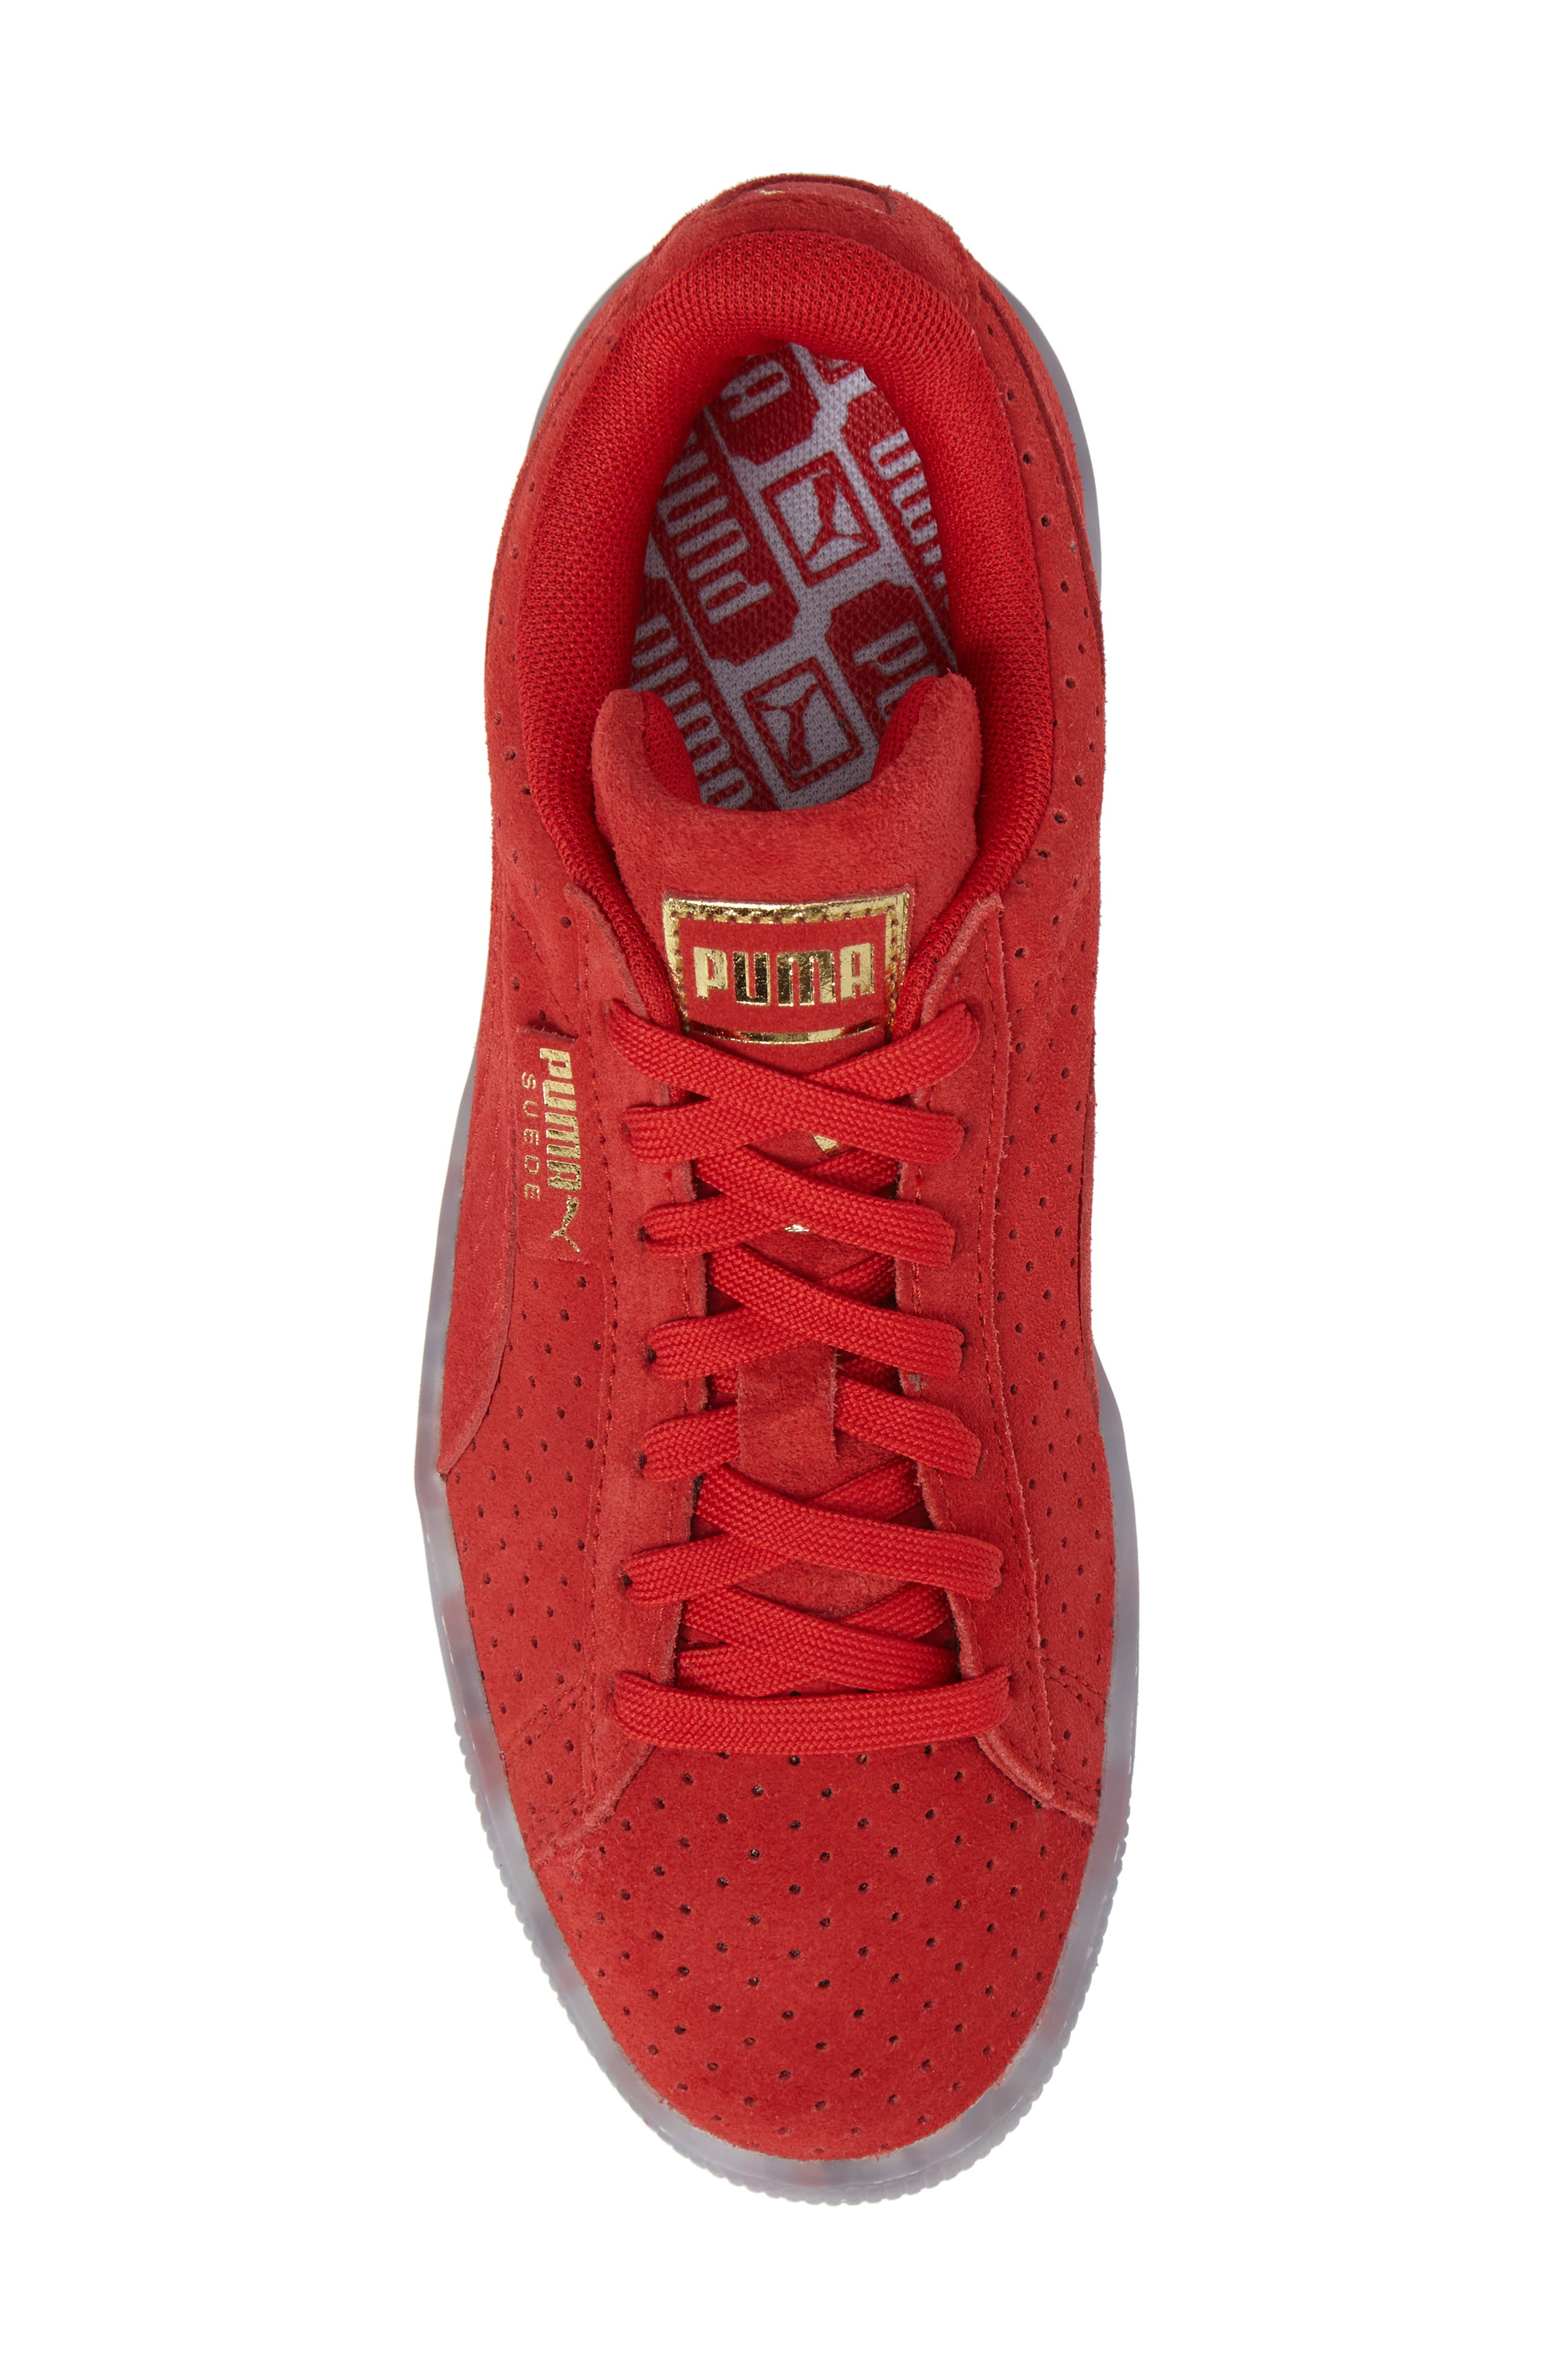 Suede Classic Perforated Sneaker,                             Alternate thumbnail 5, color,                             High Risk Red/ Puma White